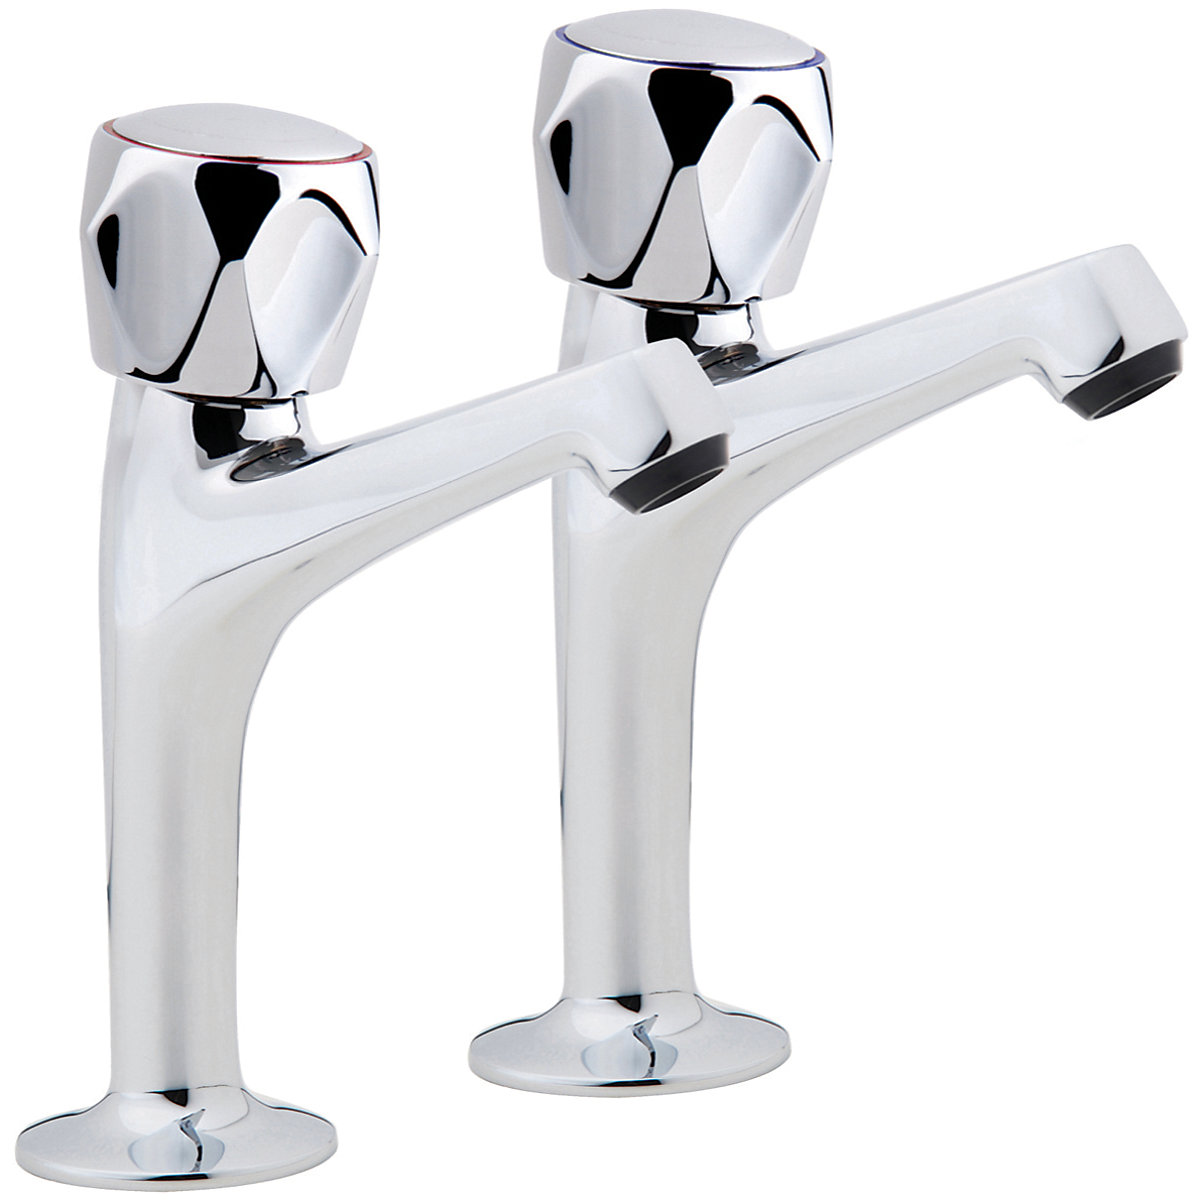 iflo Base Kitchen Sink Taps | Travis Perkins